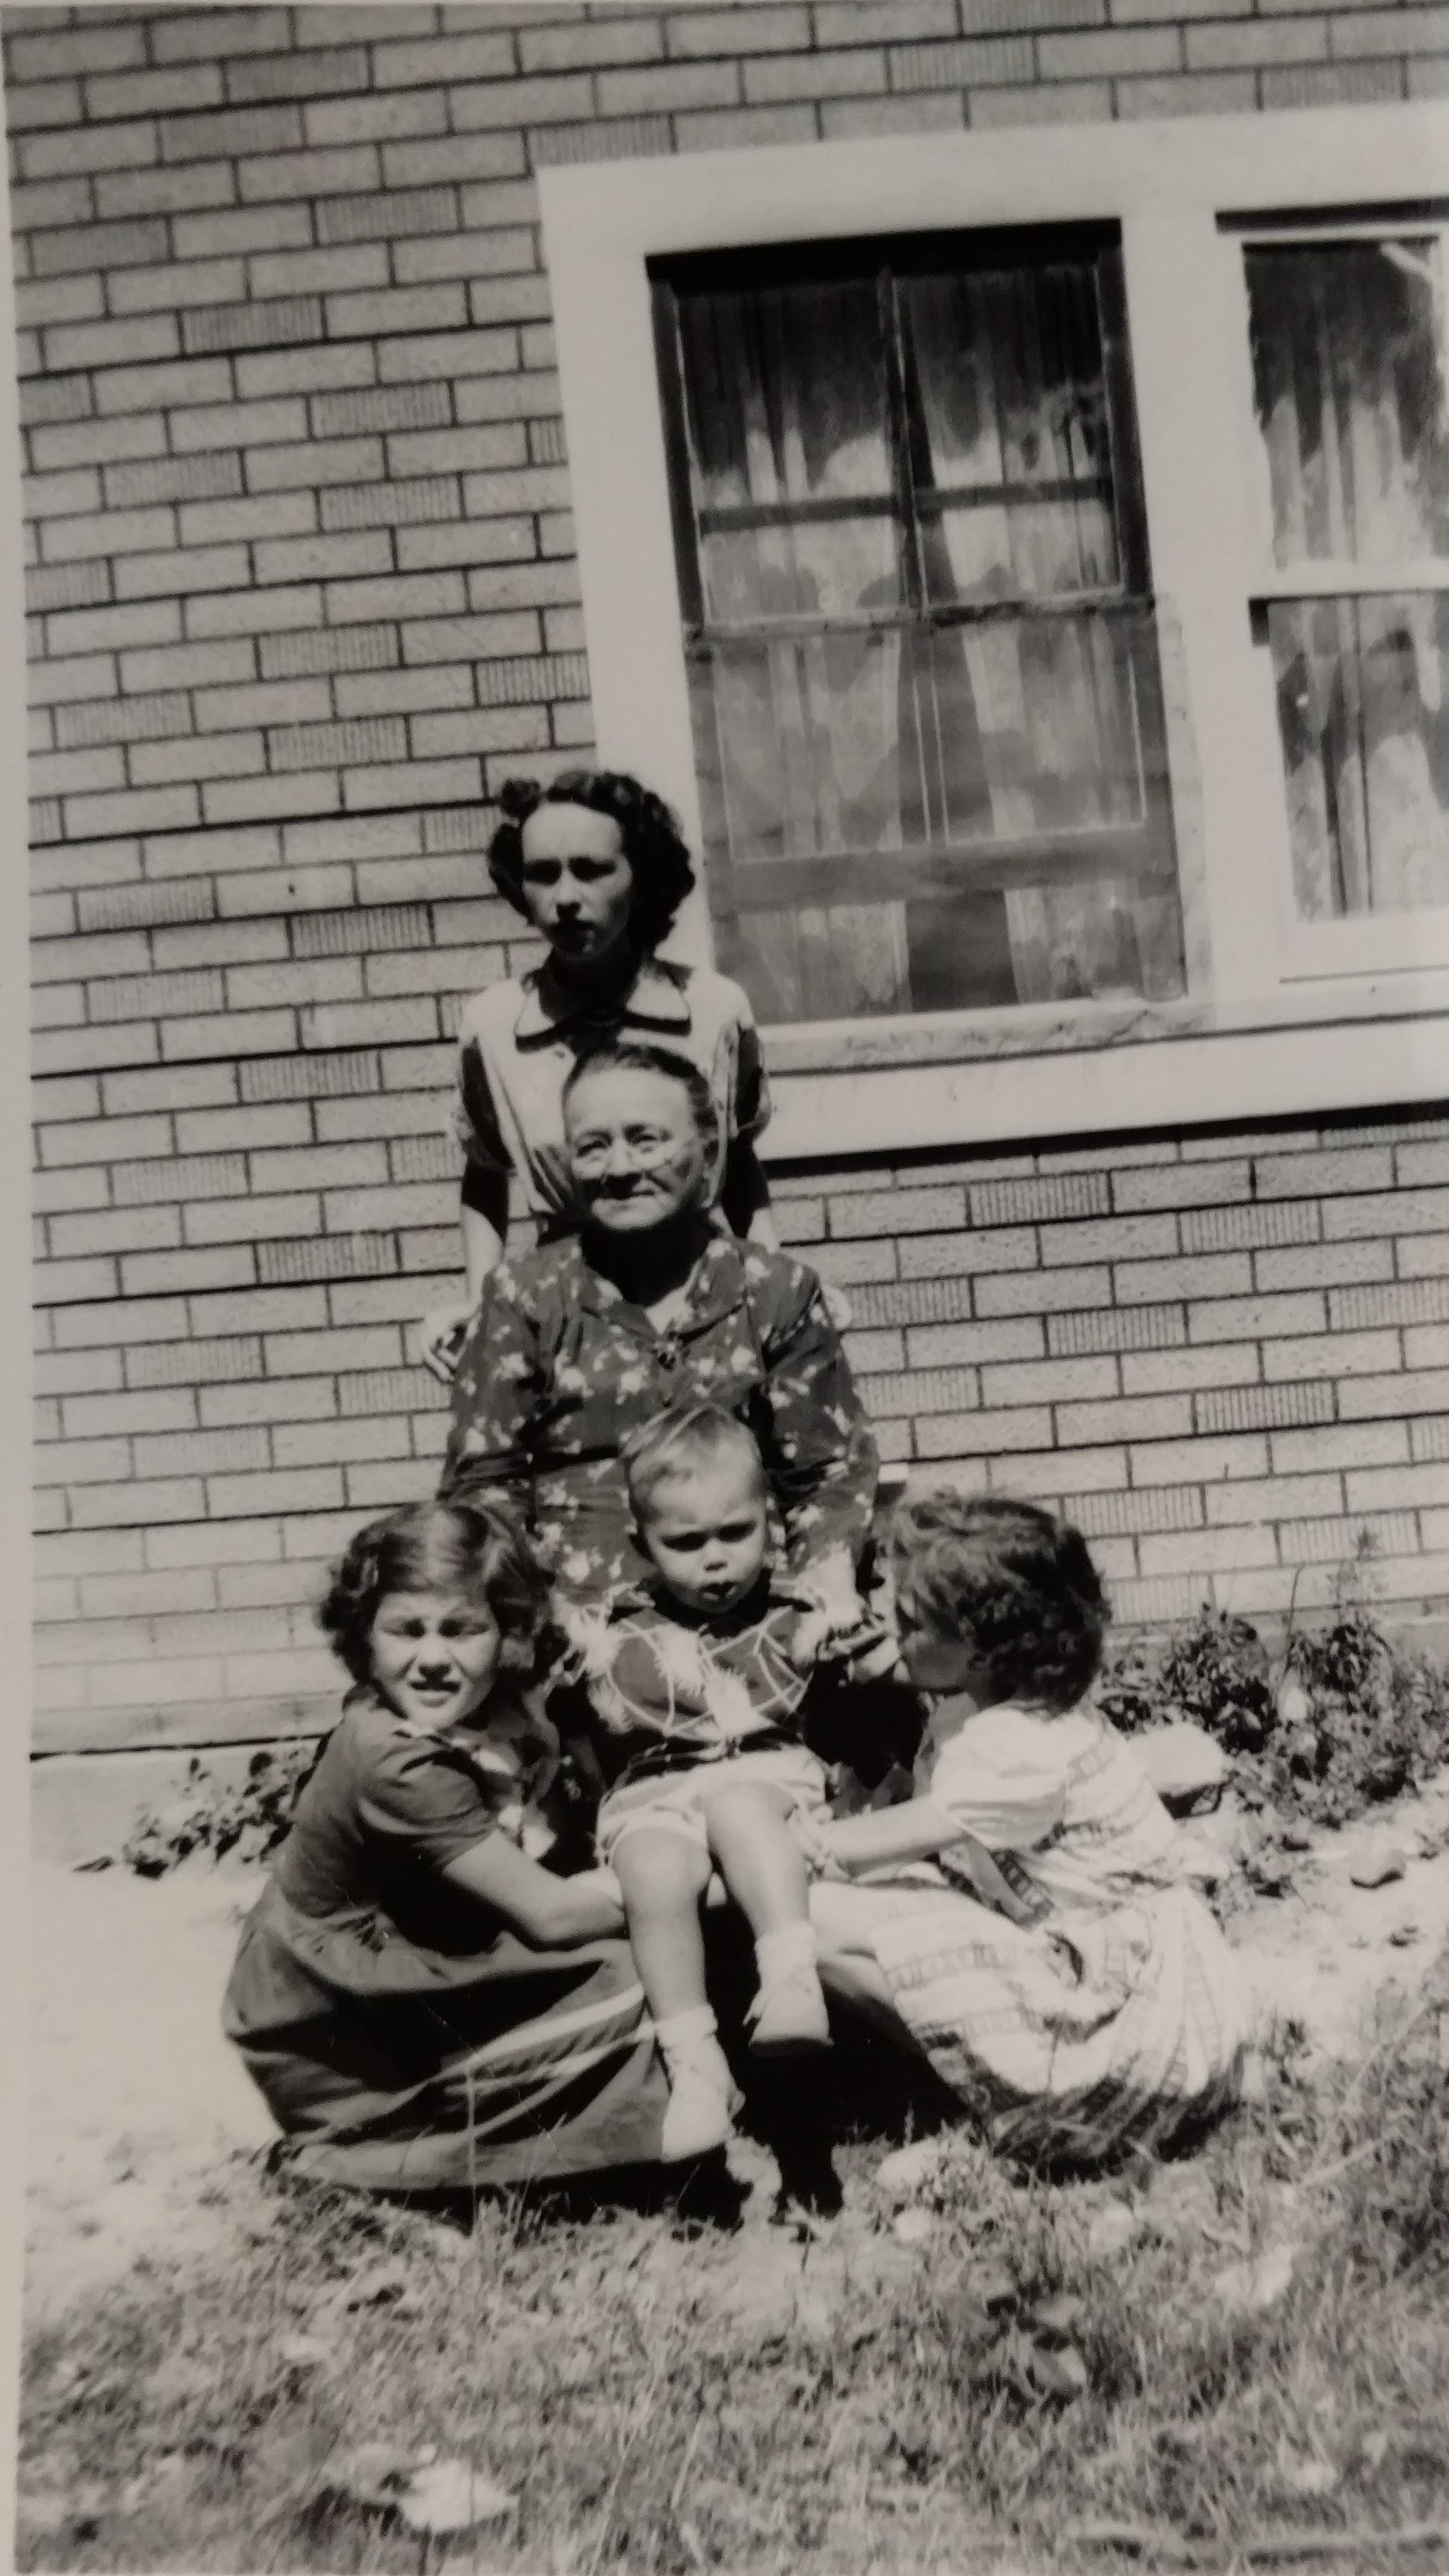 Janavee, her mother Emma Stepp, nieces Roberta and Janiene holding her son Sheldon